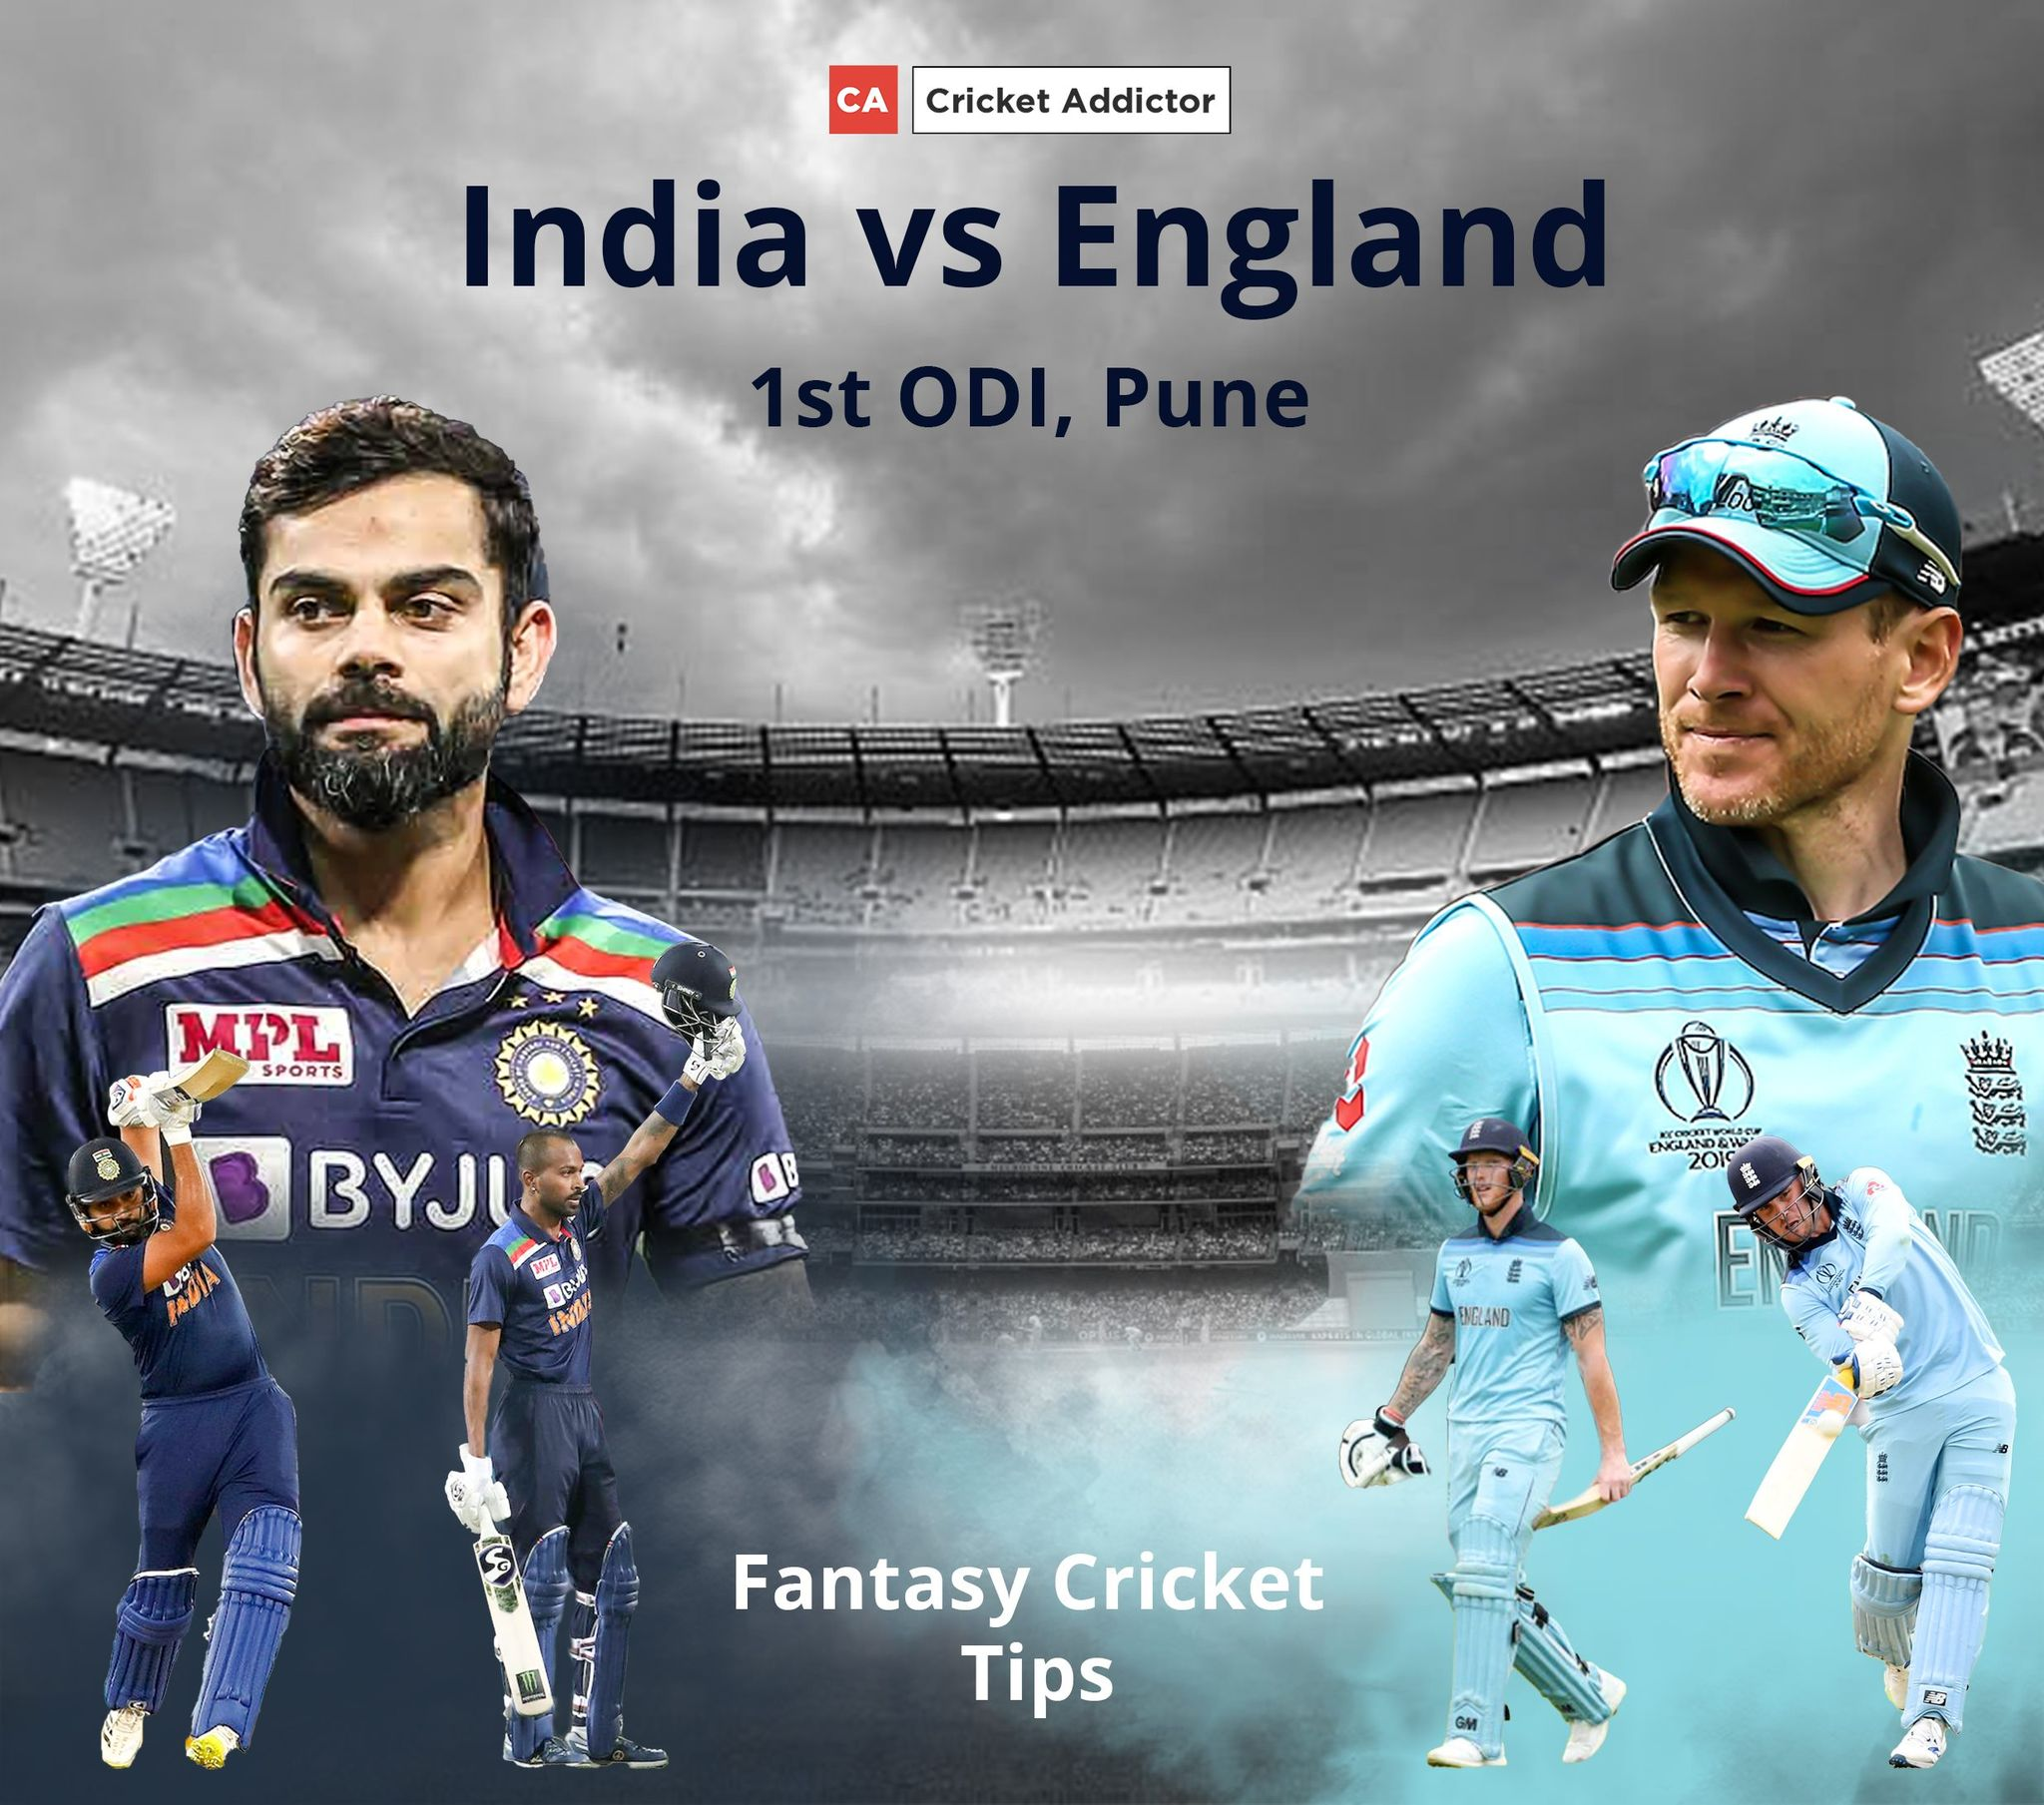 India vs England 1st ODI Dream11 Prediction, Fantasy Cricket Tips, Playing XI, Pitch Report, Dream11 Team, and Injury Update.